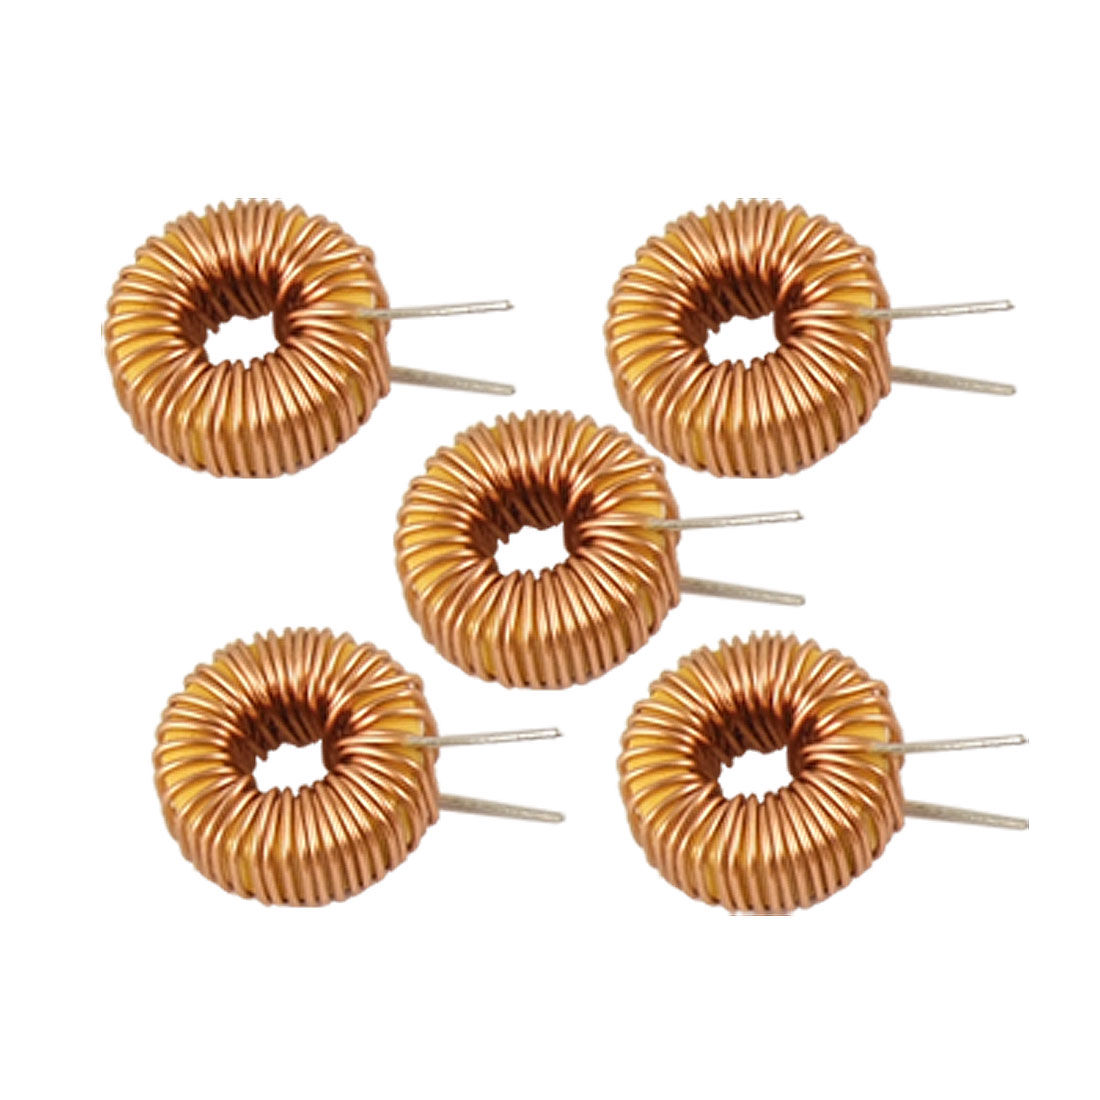 Electronic Circuit 100uH Rated Current 4A Toroidal Inductors 5 Pcs